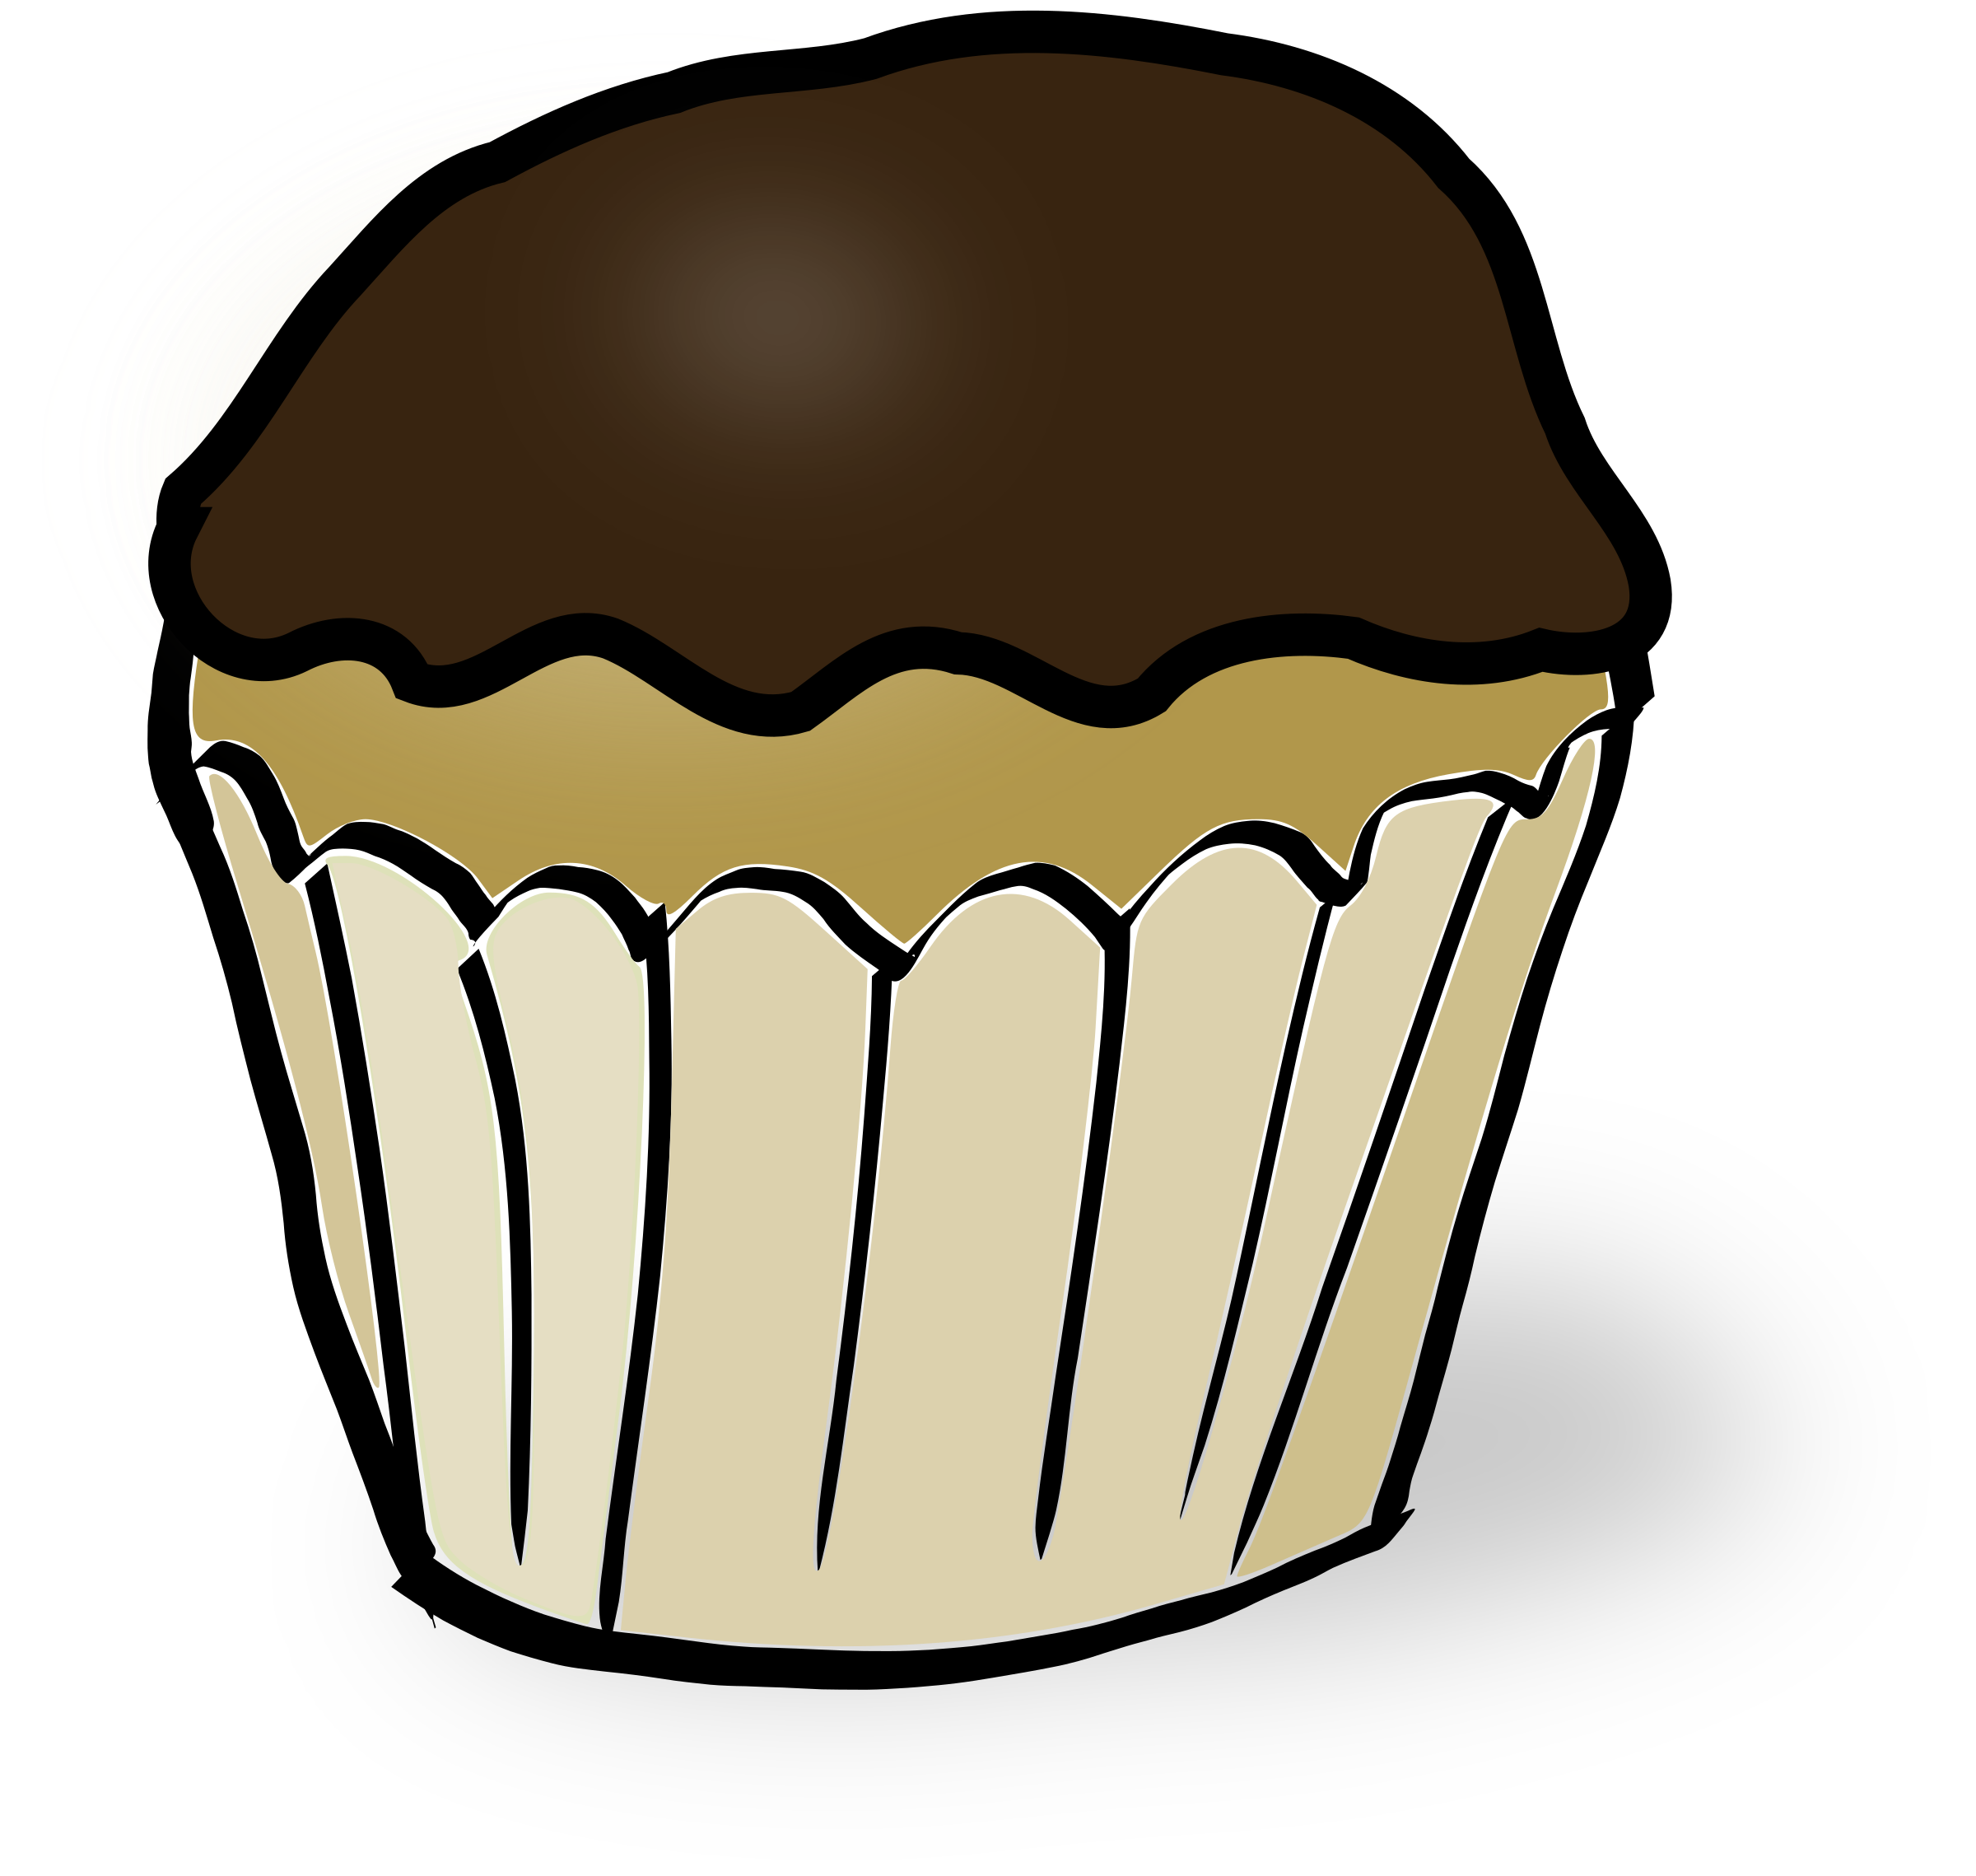 Chocolate Muffin by rubejar